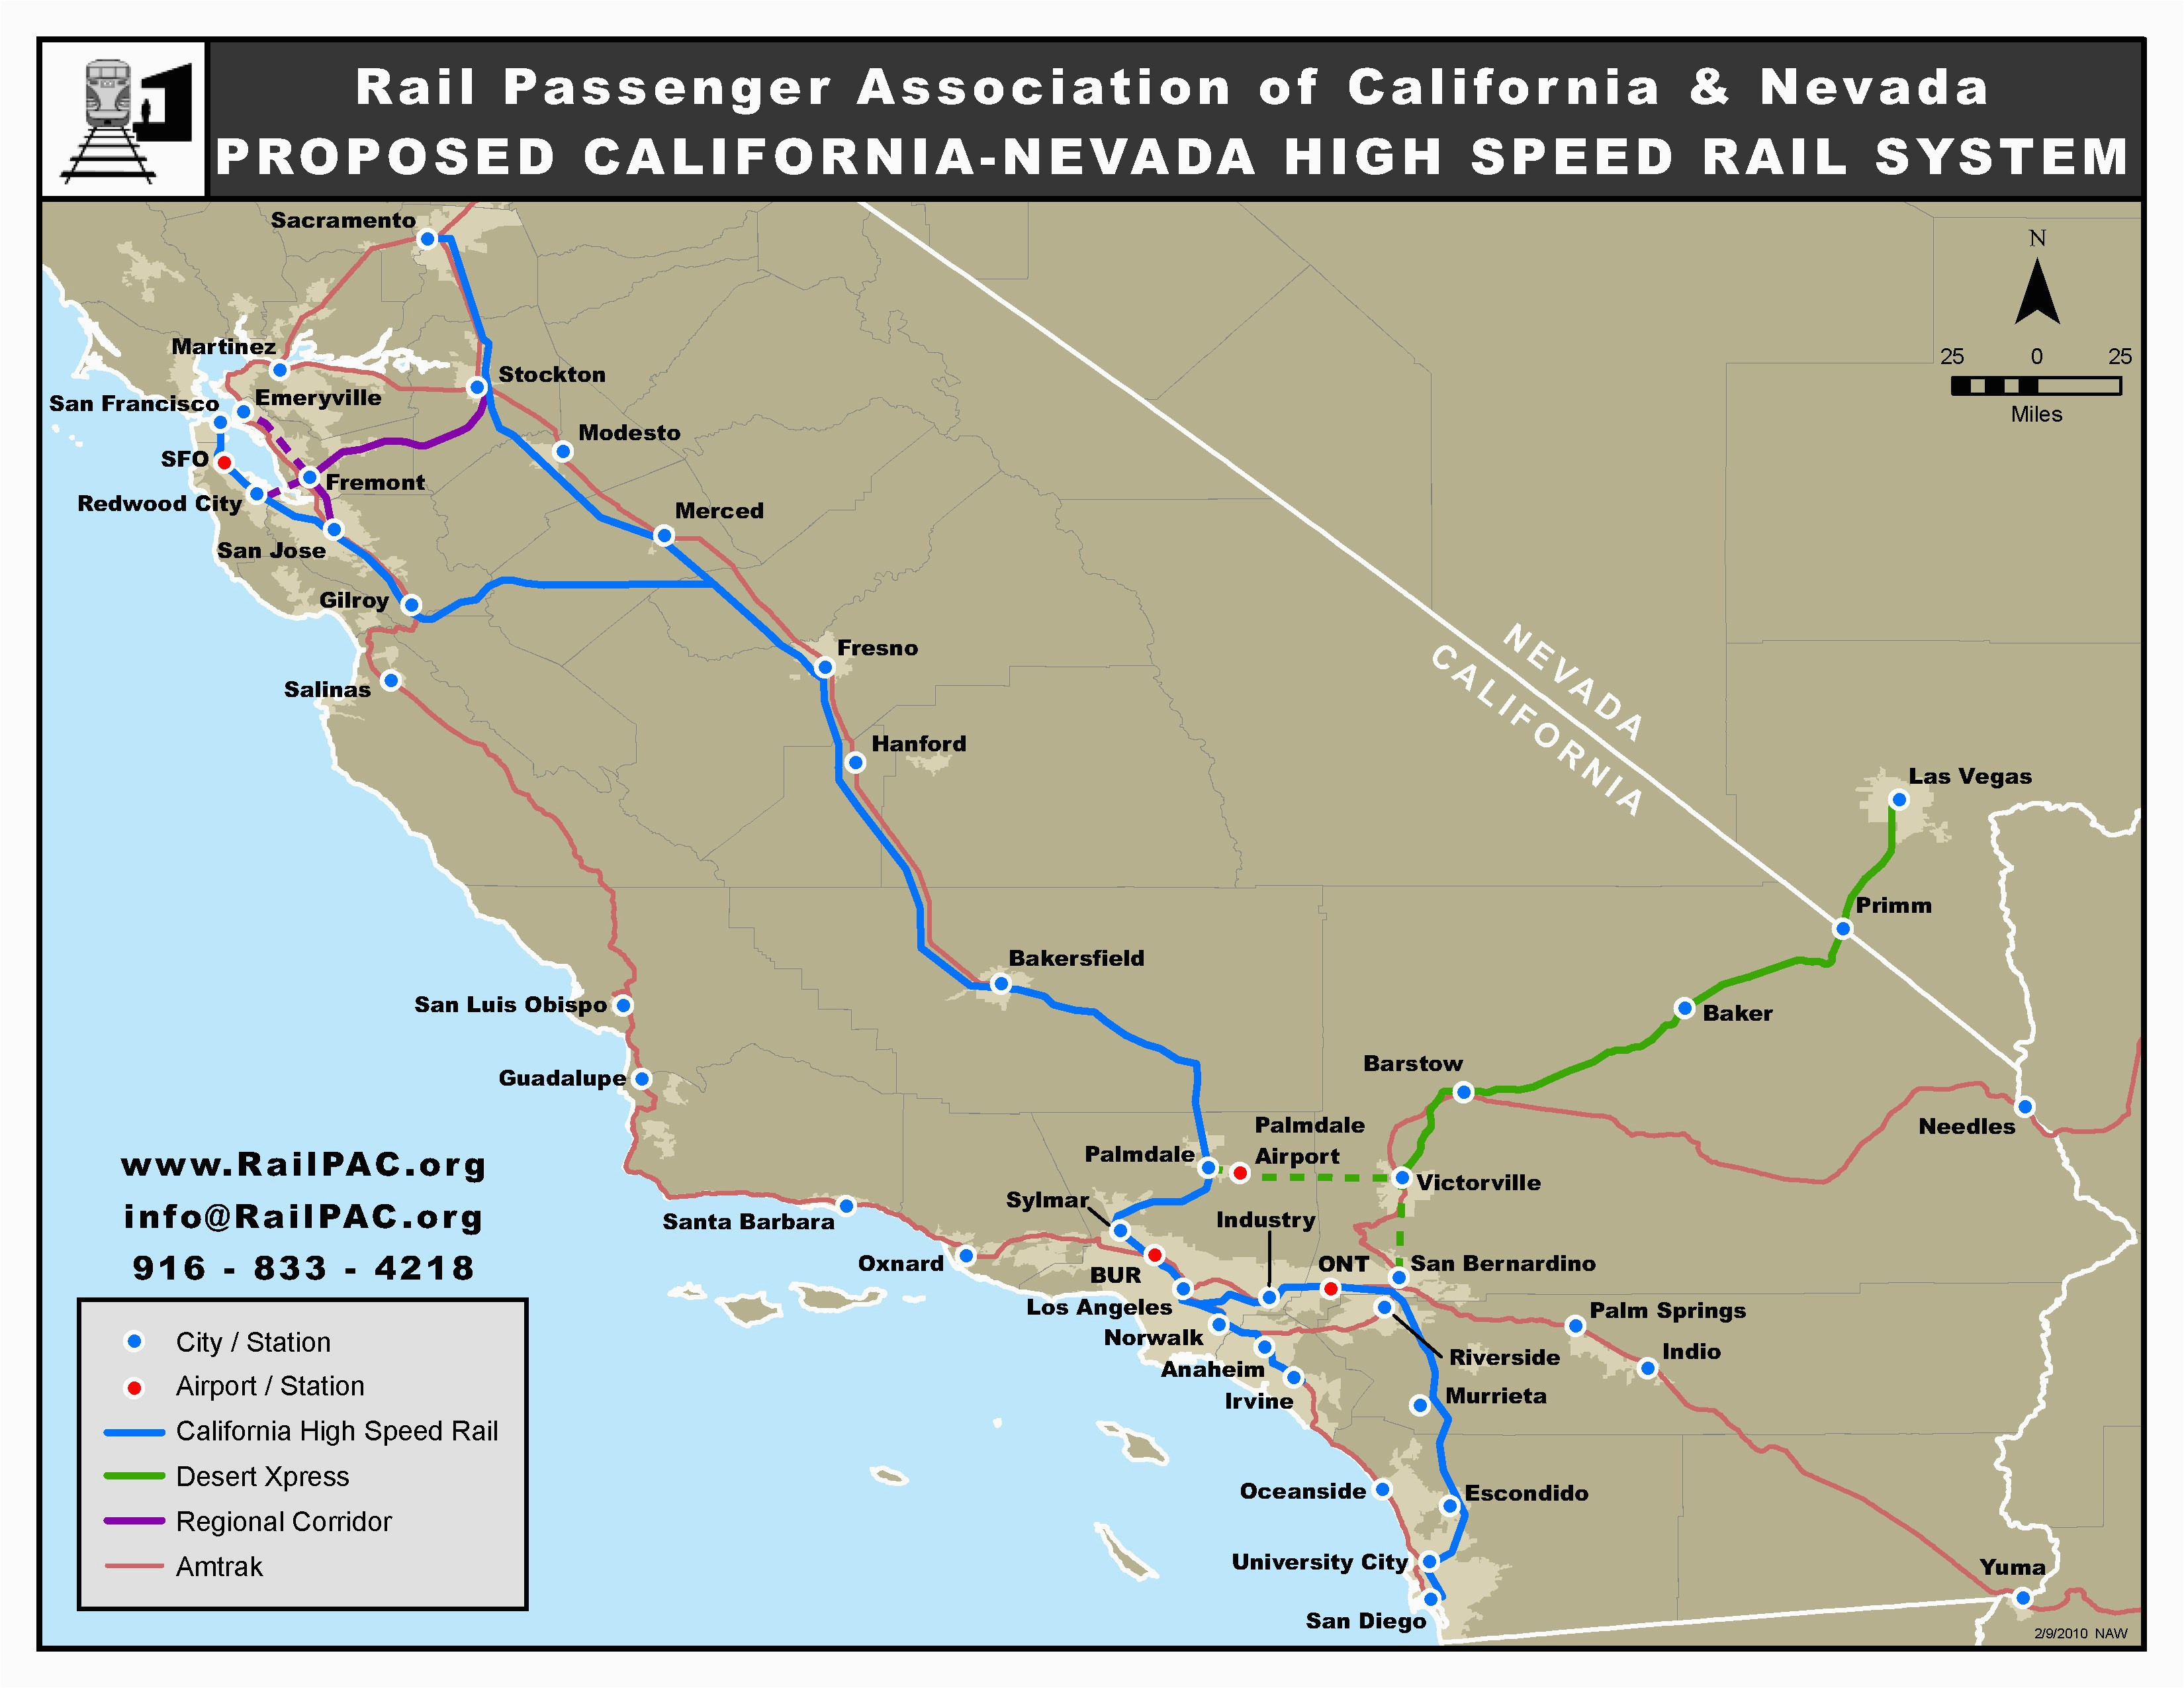 amtrak route map southern california reference gotthard basistunnel